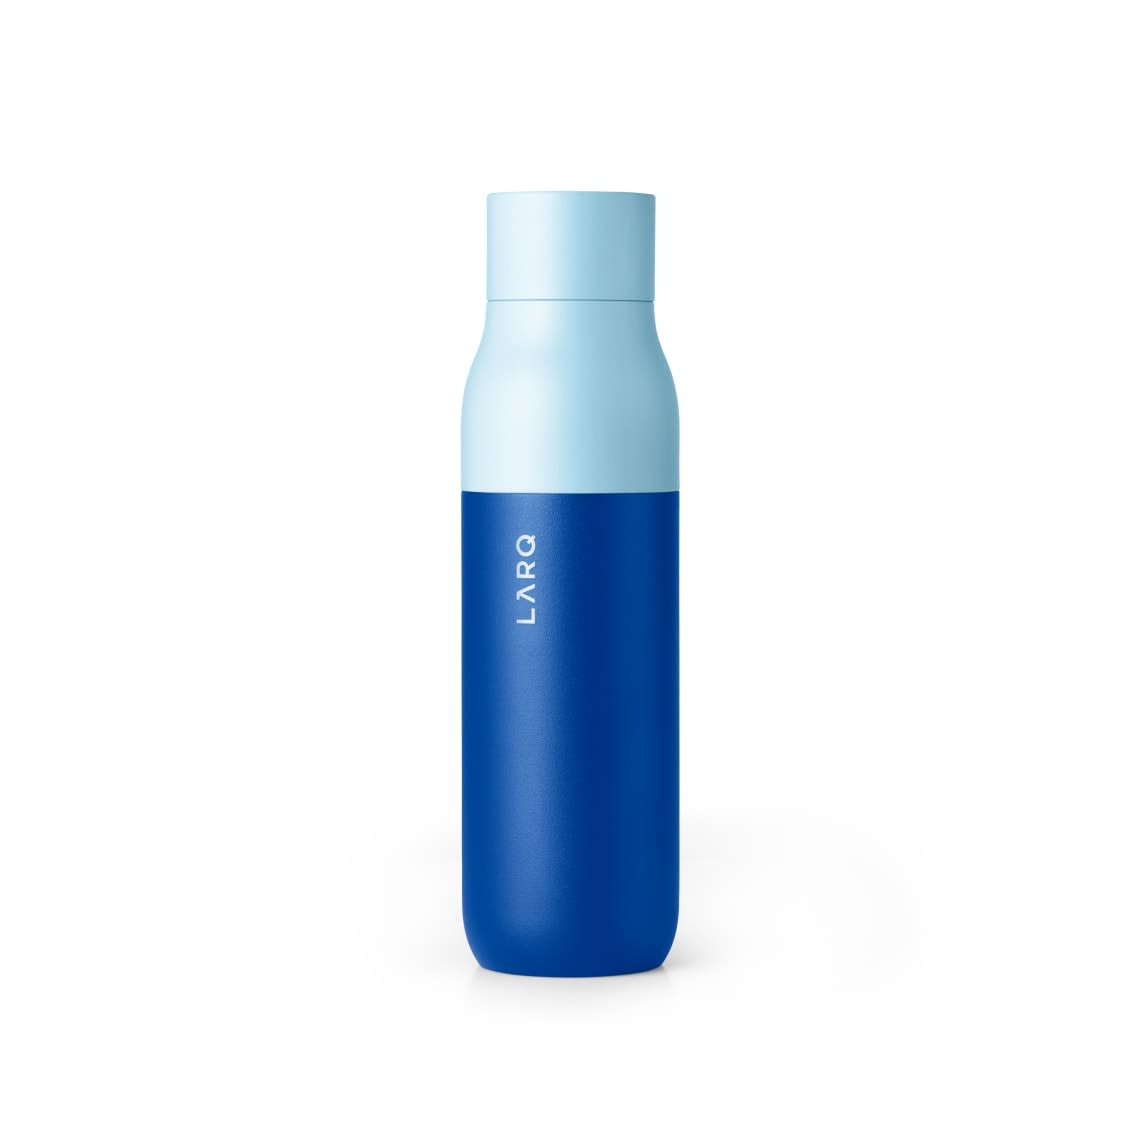 LARQ Bottle PureVis - Electro Blue